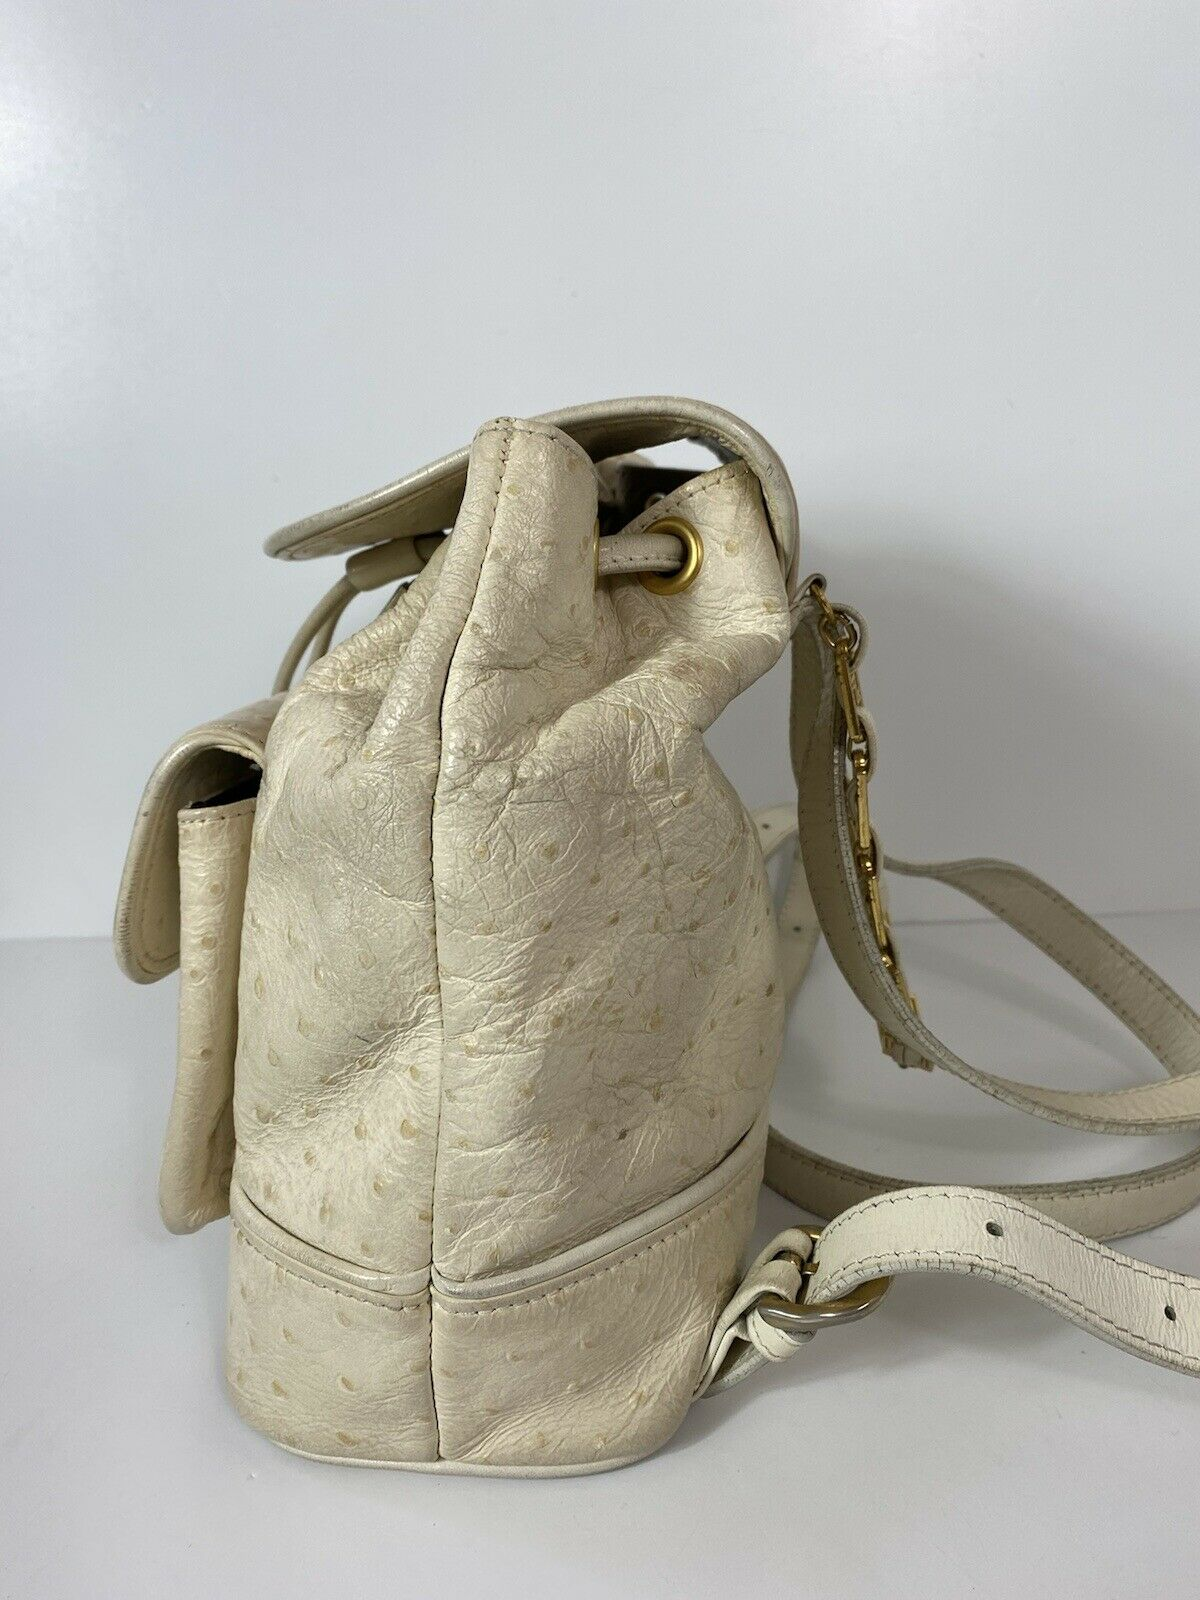 RARE VTG GIANNI VERSACE 90S WHITE OSTRICH BACKPACK - image 2